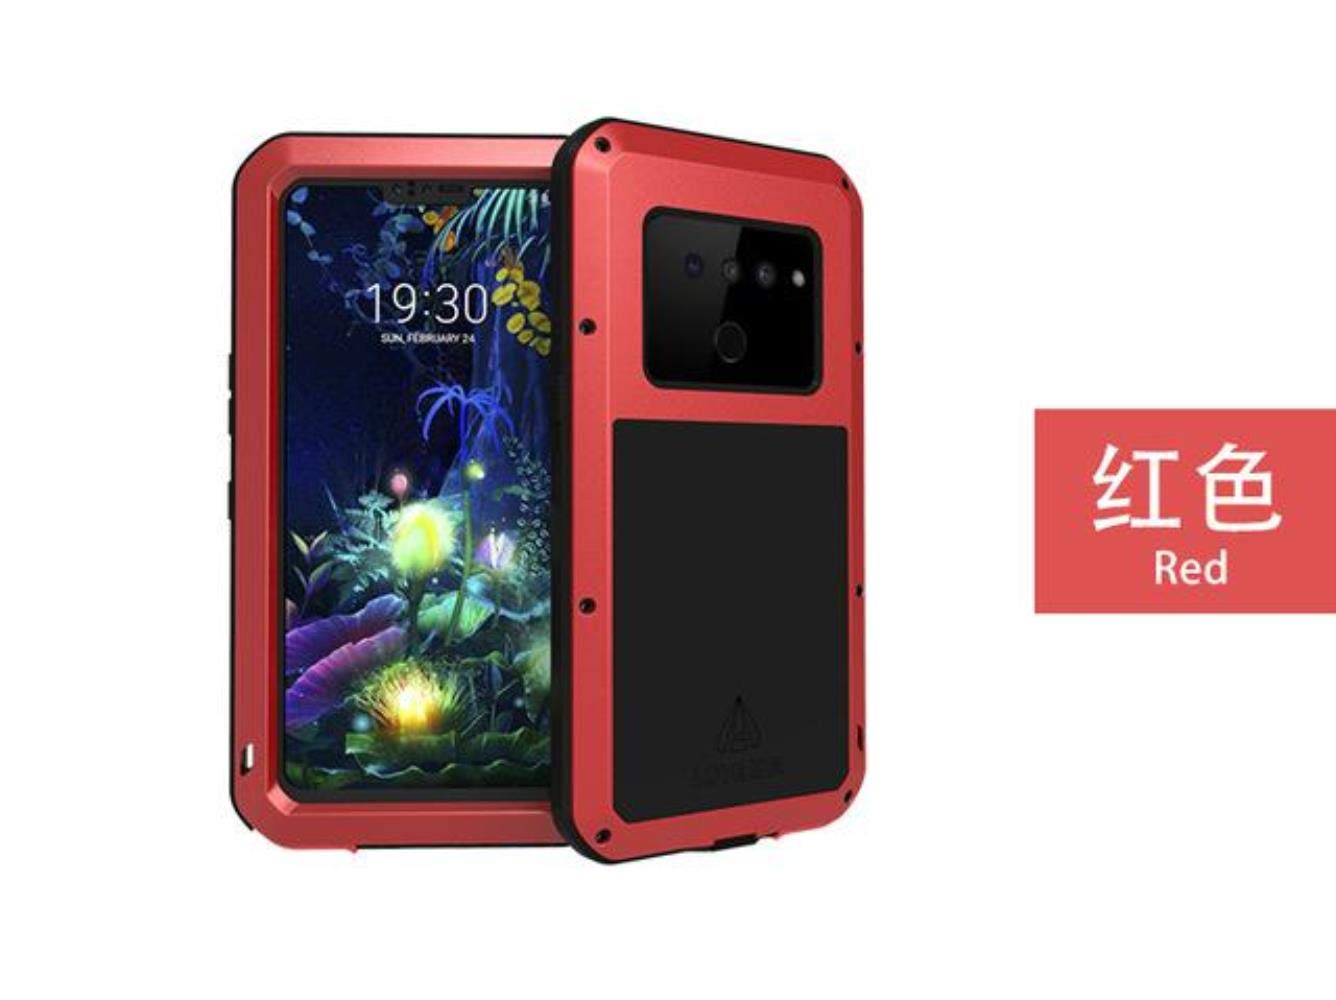 Metal Armor Heavy Duty Protective Case for Lg V50 Thinq Case Shockproof Full Body with Gorrila Glass Cover Lg V50 Thinq Cover,Red,for LG V50 ThinQ